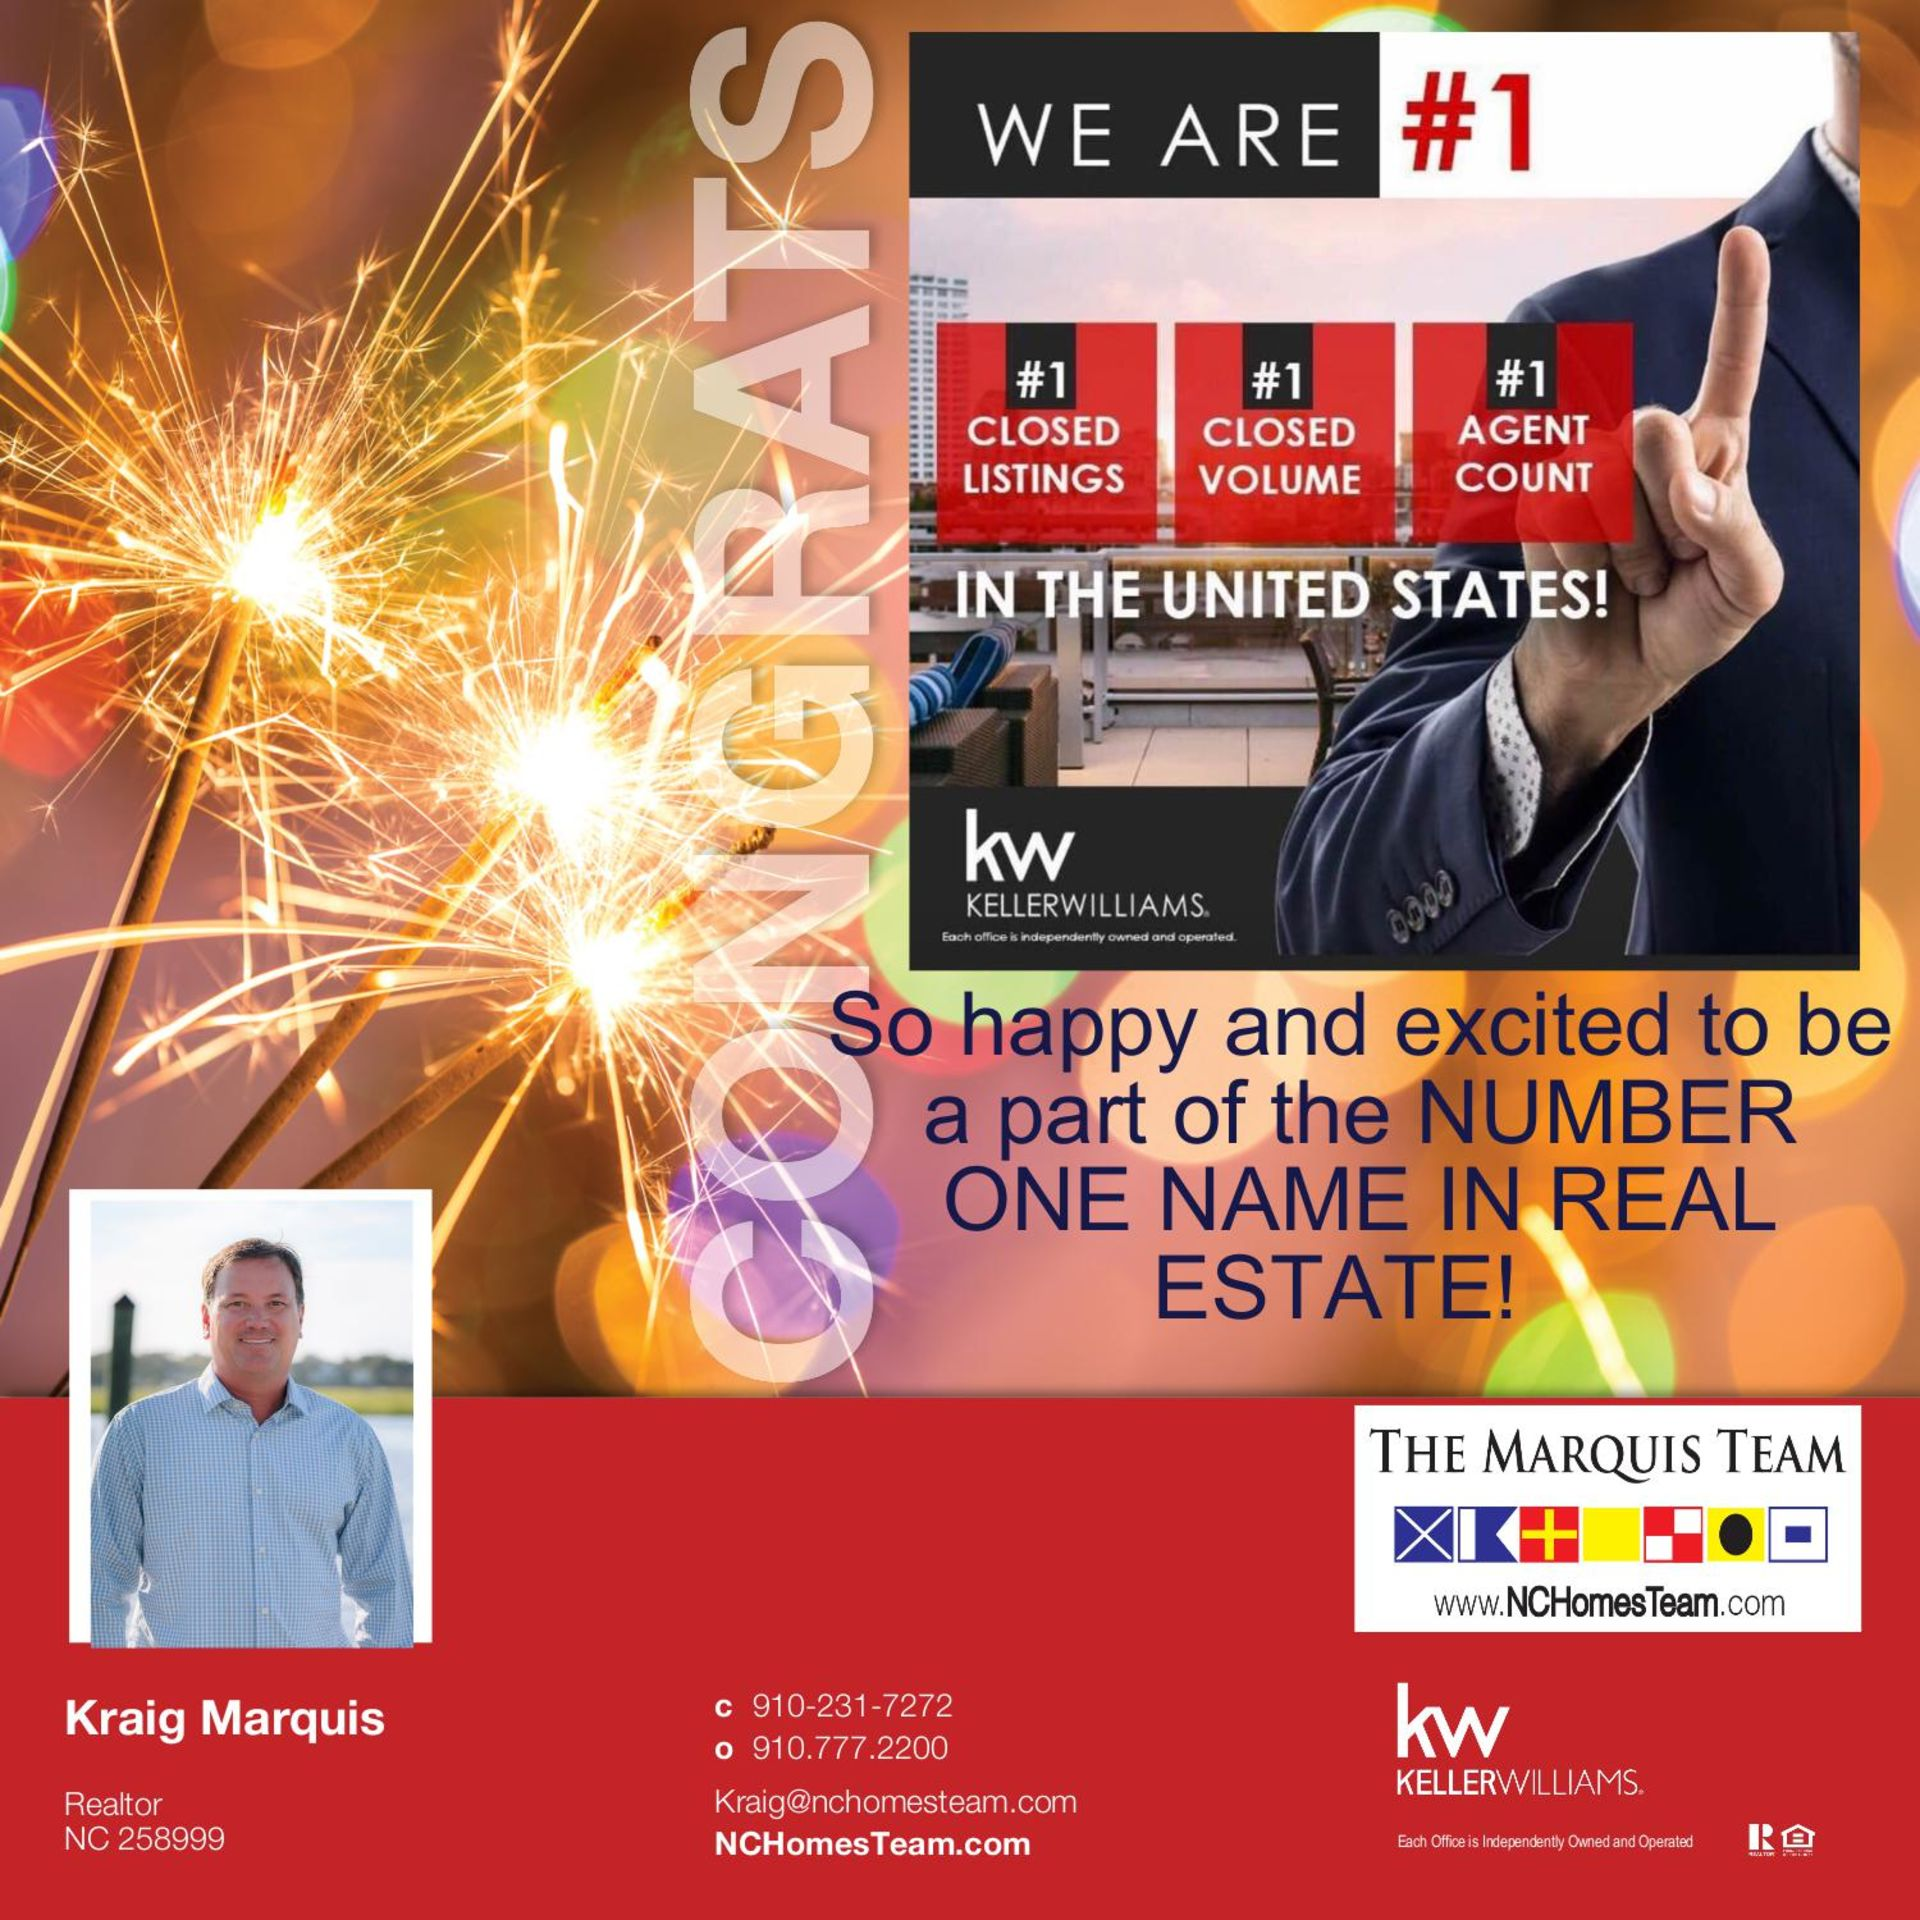 Keller Williams Realty Is NO. 1!